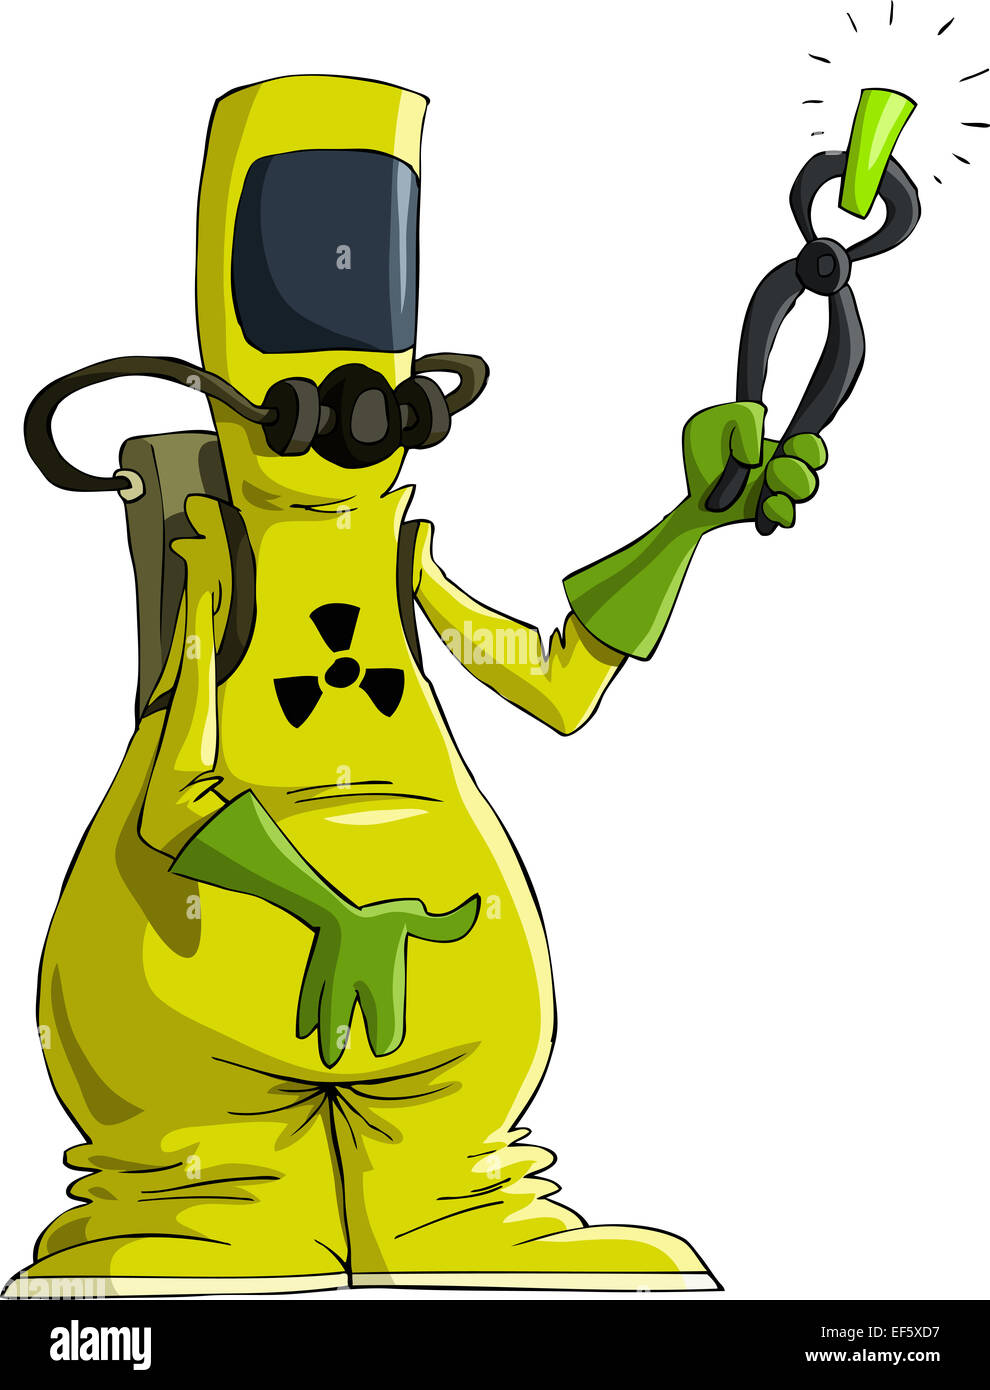 Cartoon man in radiation suit - Stock Image